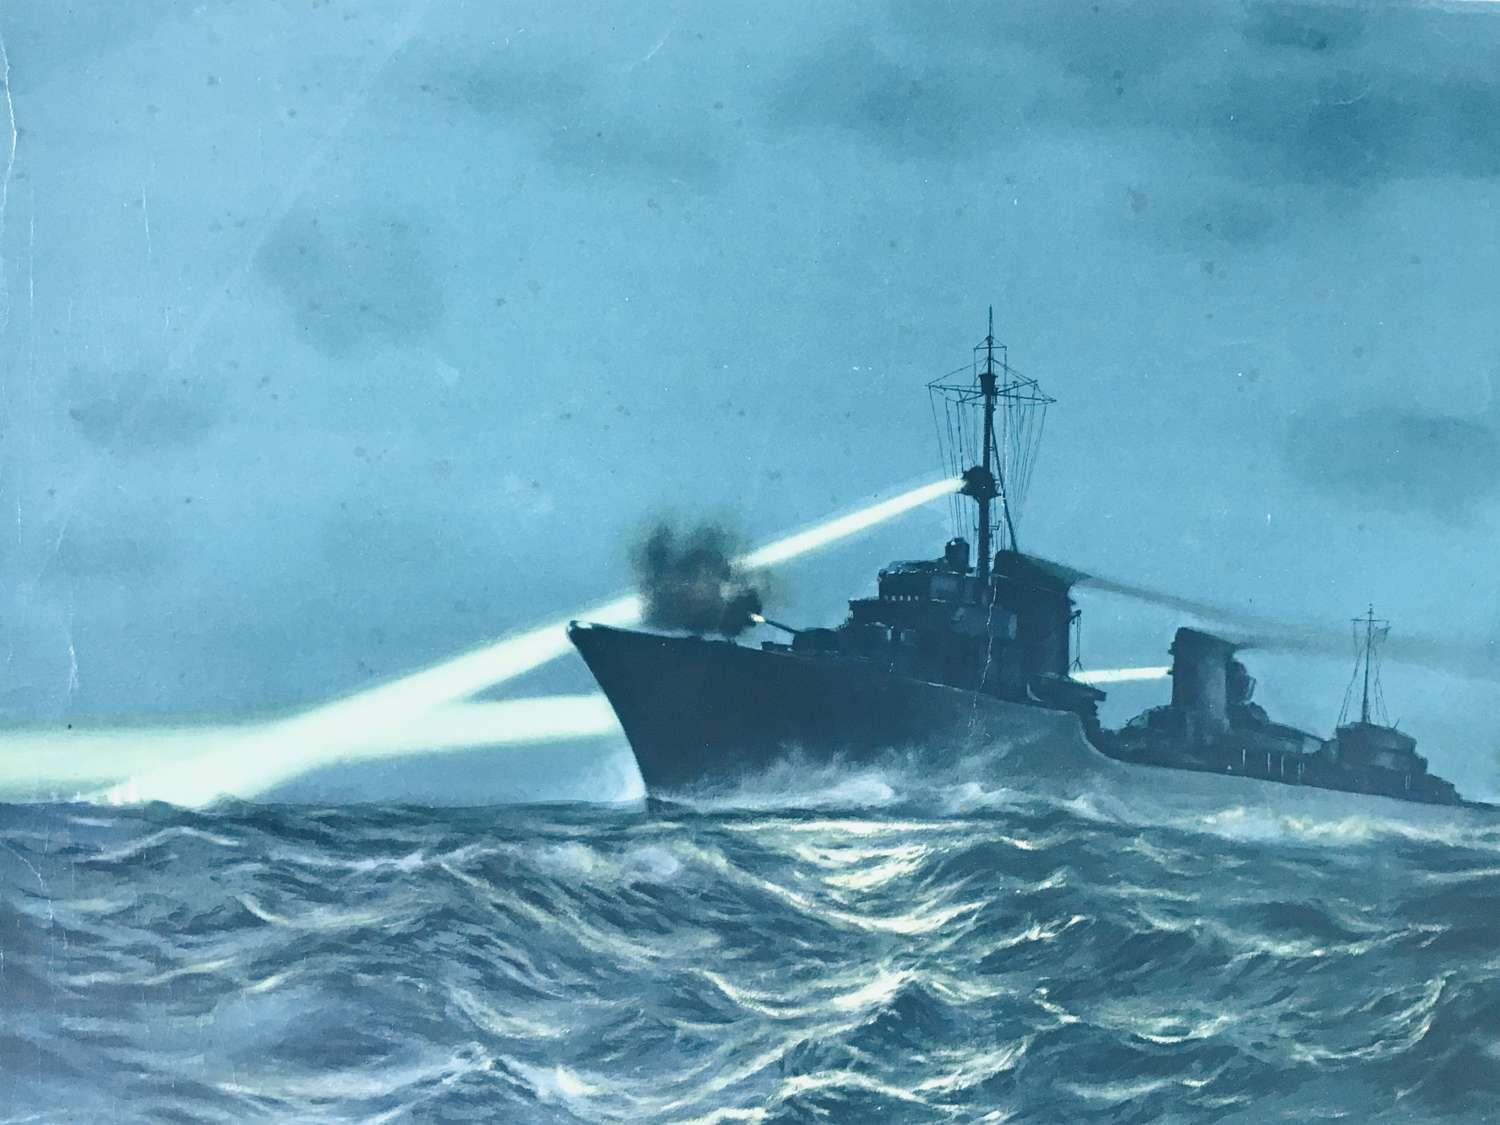 Destroyer in night action of the English coast